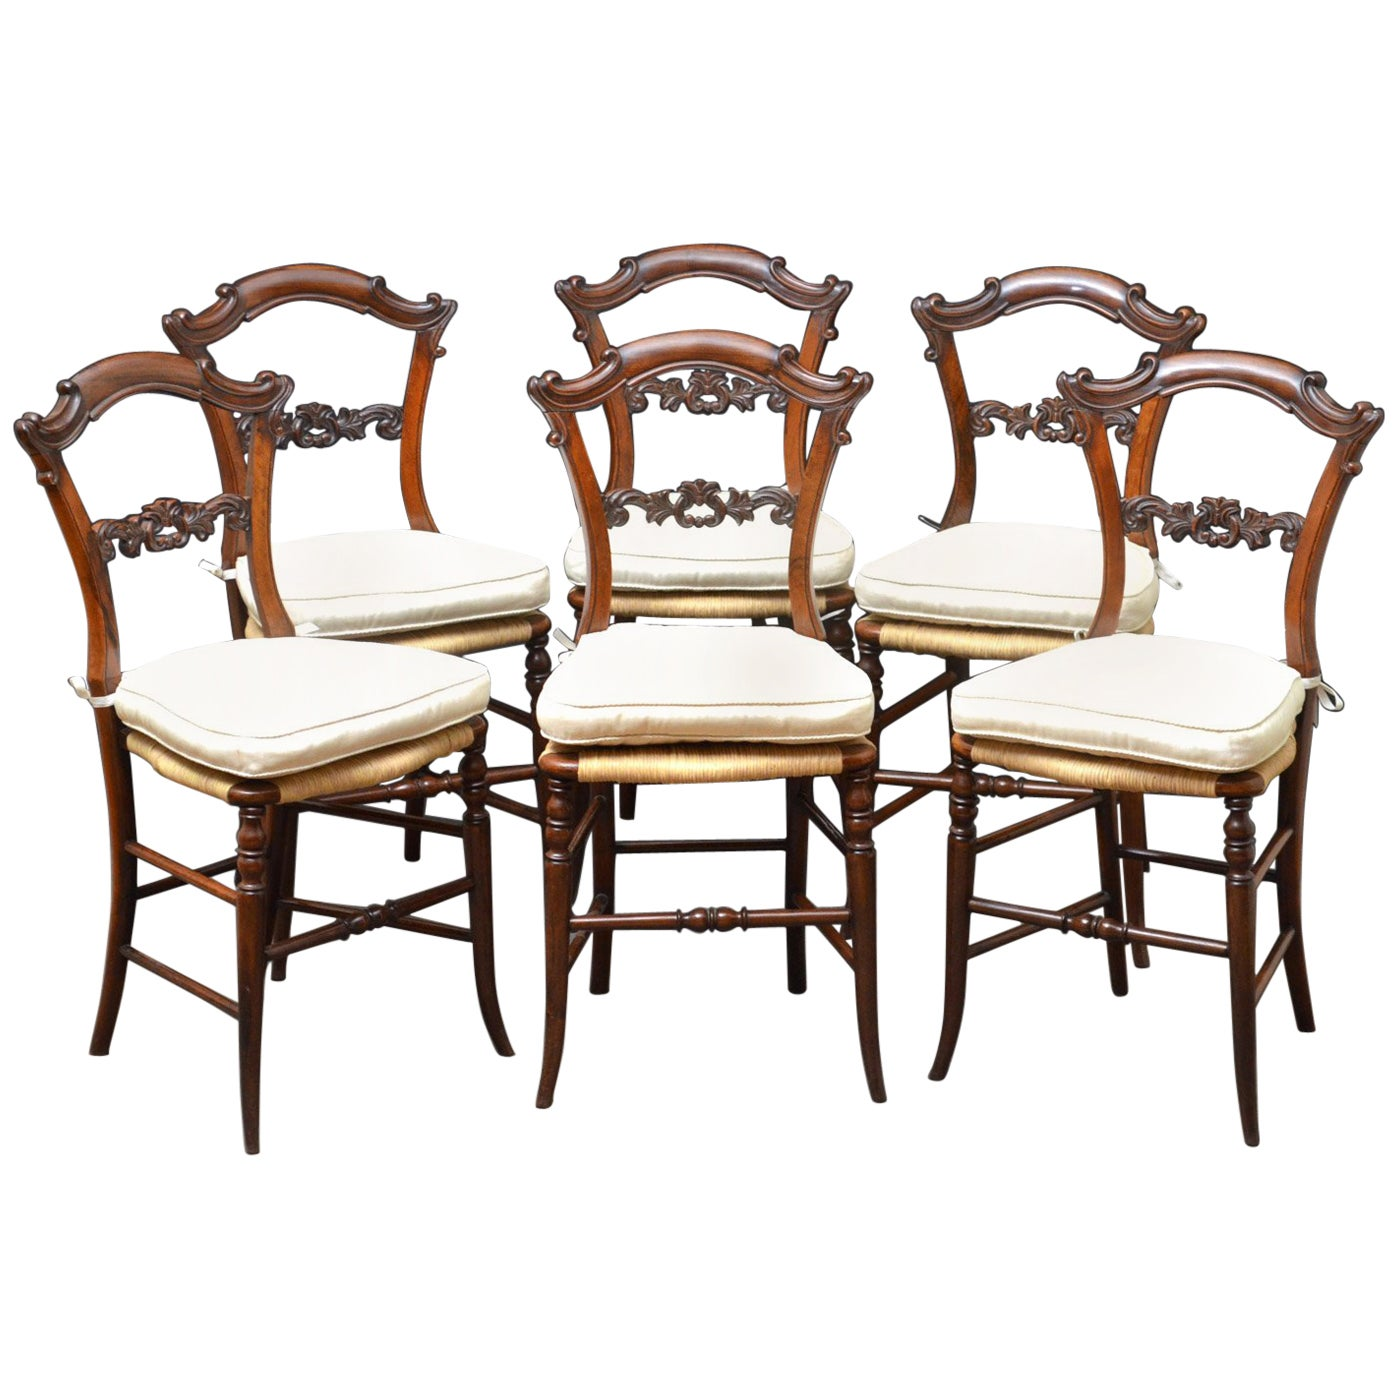 Set of Six Early Victorian Chairs in Rosewood